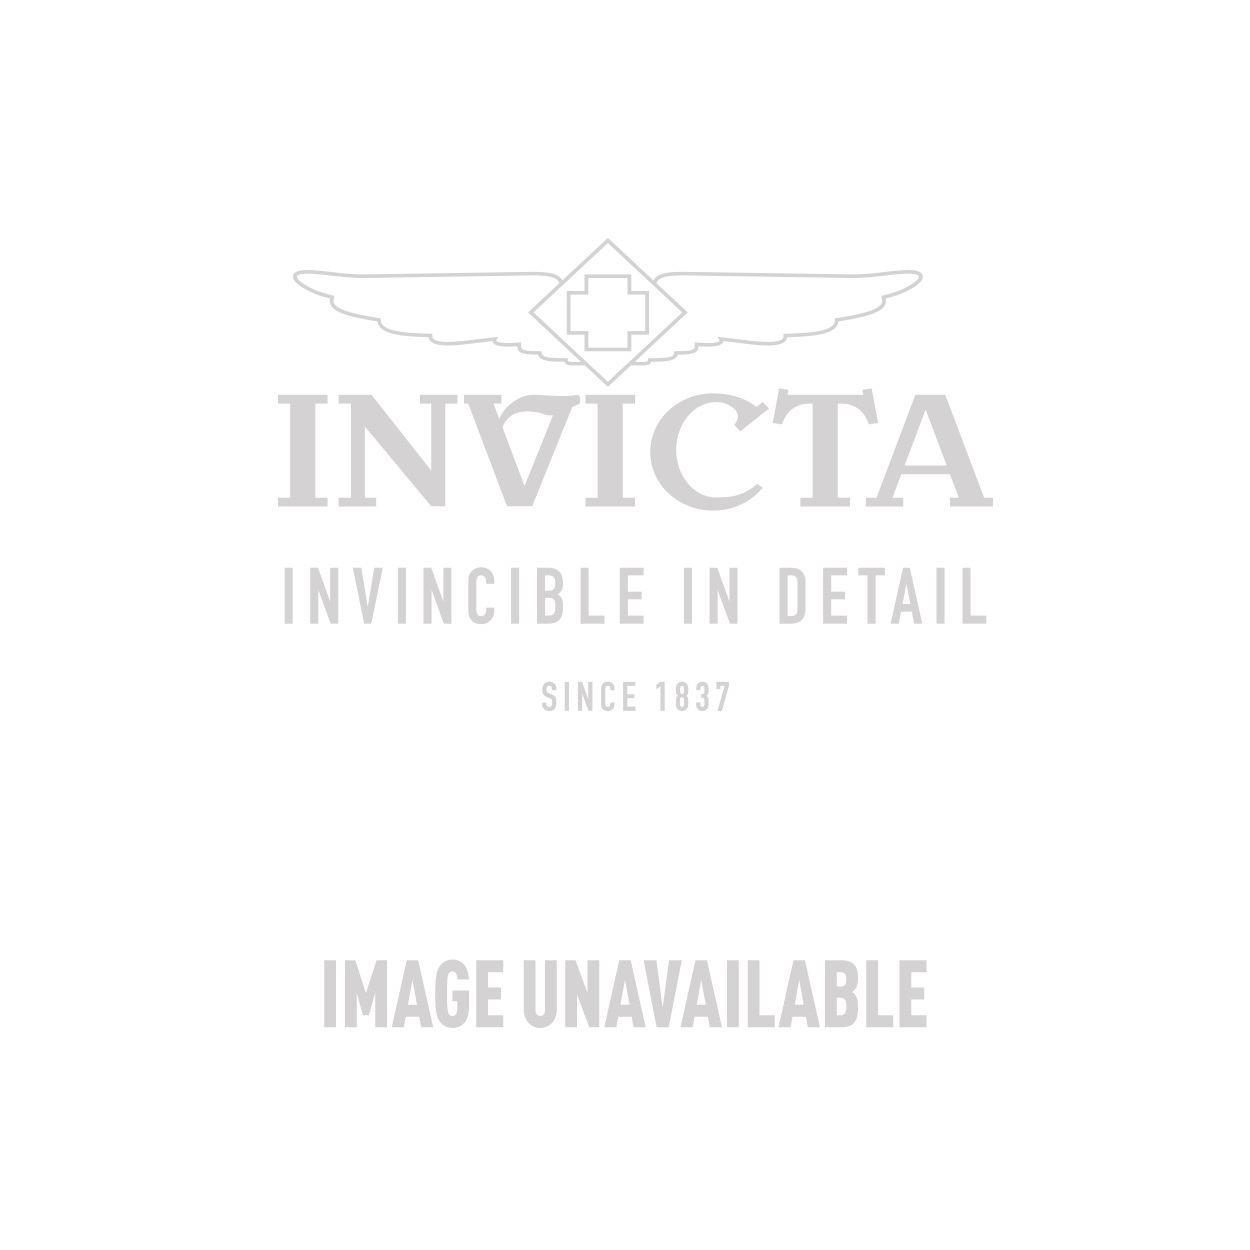 Invicta Speedway Swiss Movement Quartz Watch - Gold, Black case with Gold tone Stainless Steel band - Model 19853